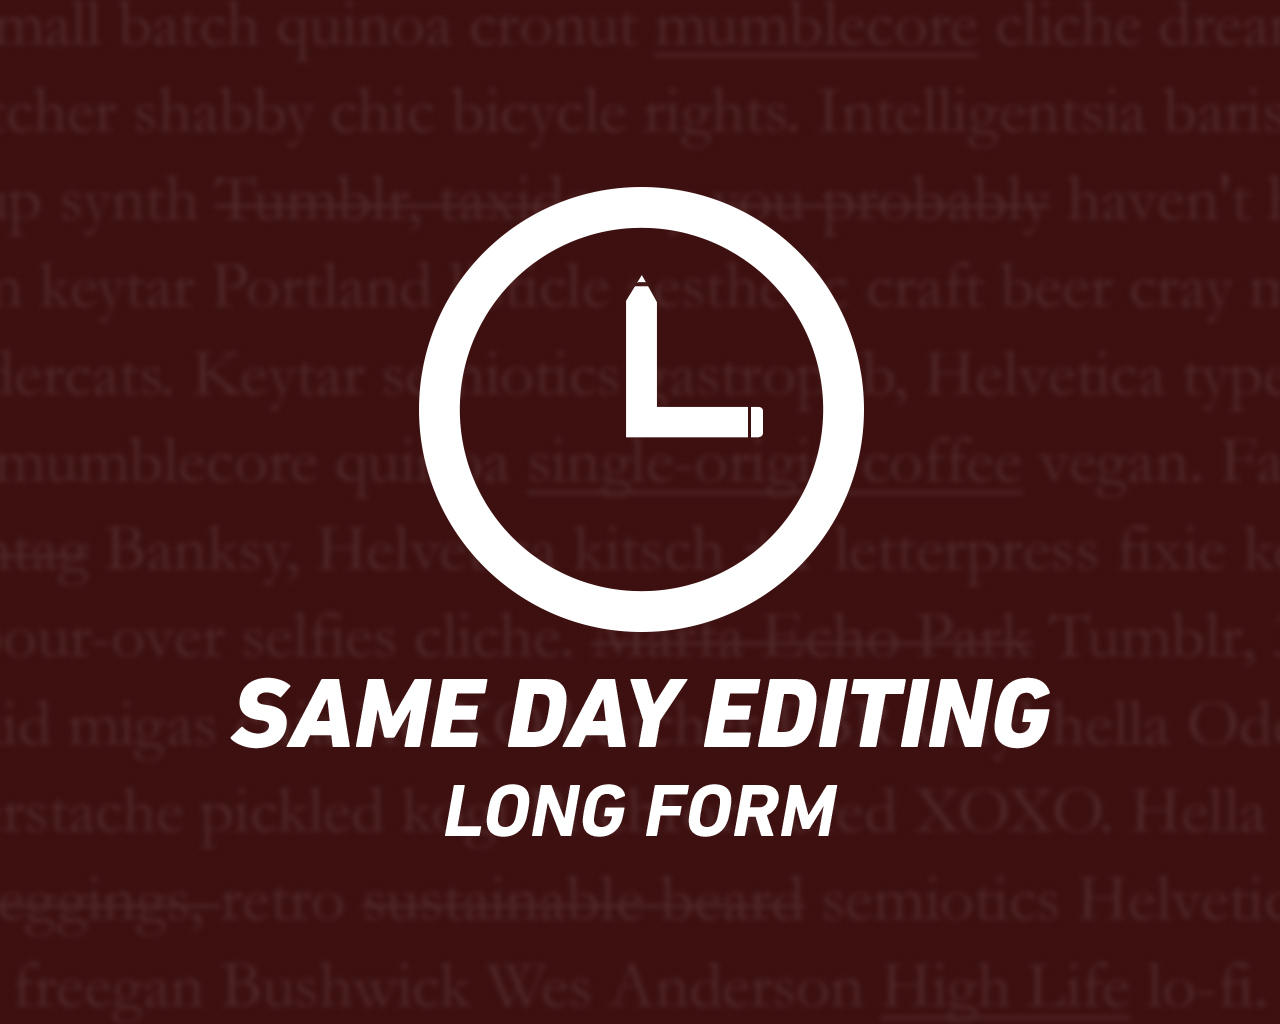 Same Day Long Form Editing by tarnopol - 74003